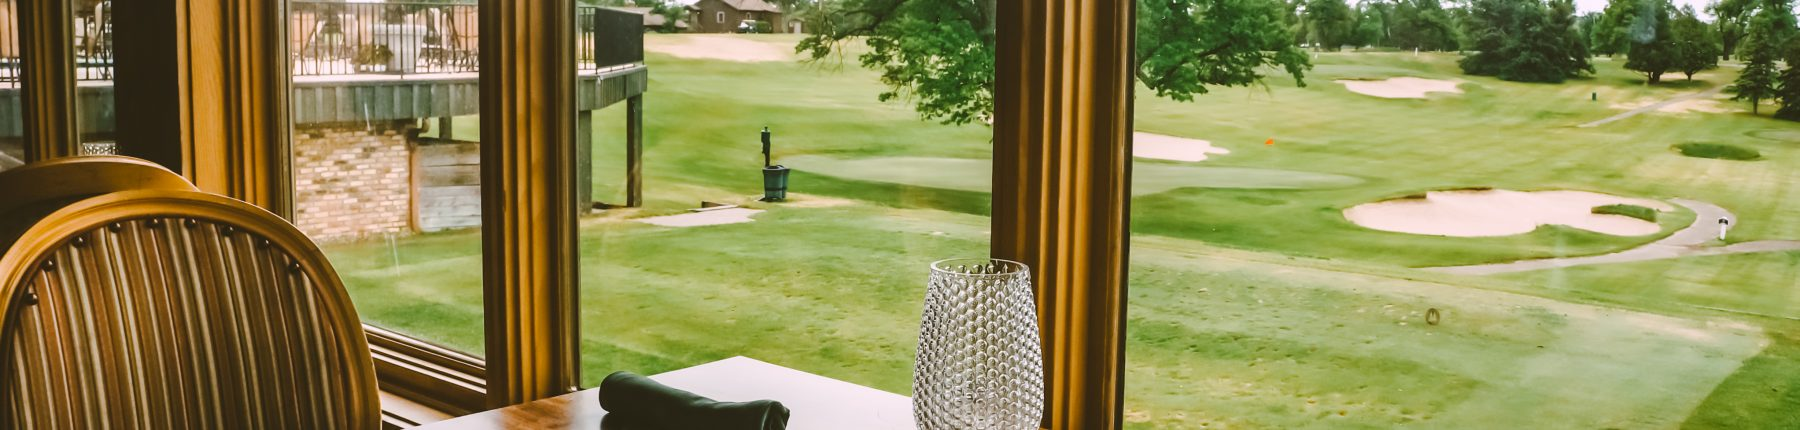 menu open on table overlooking golf course